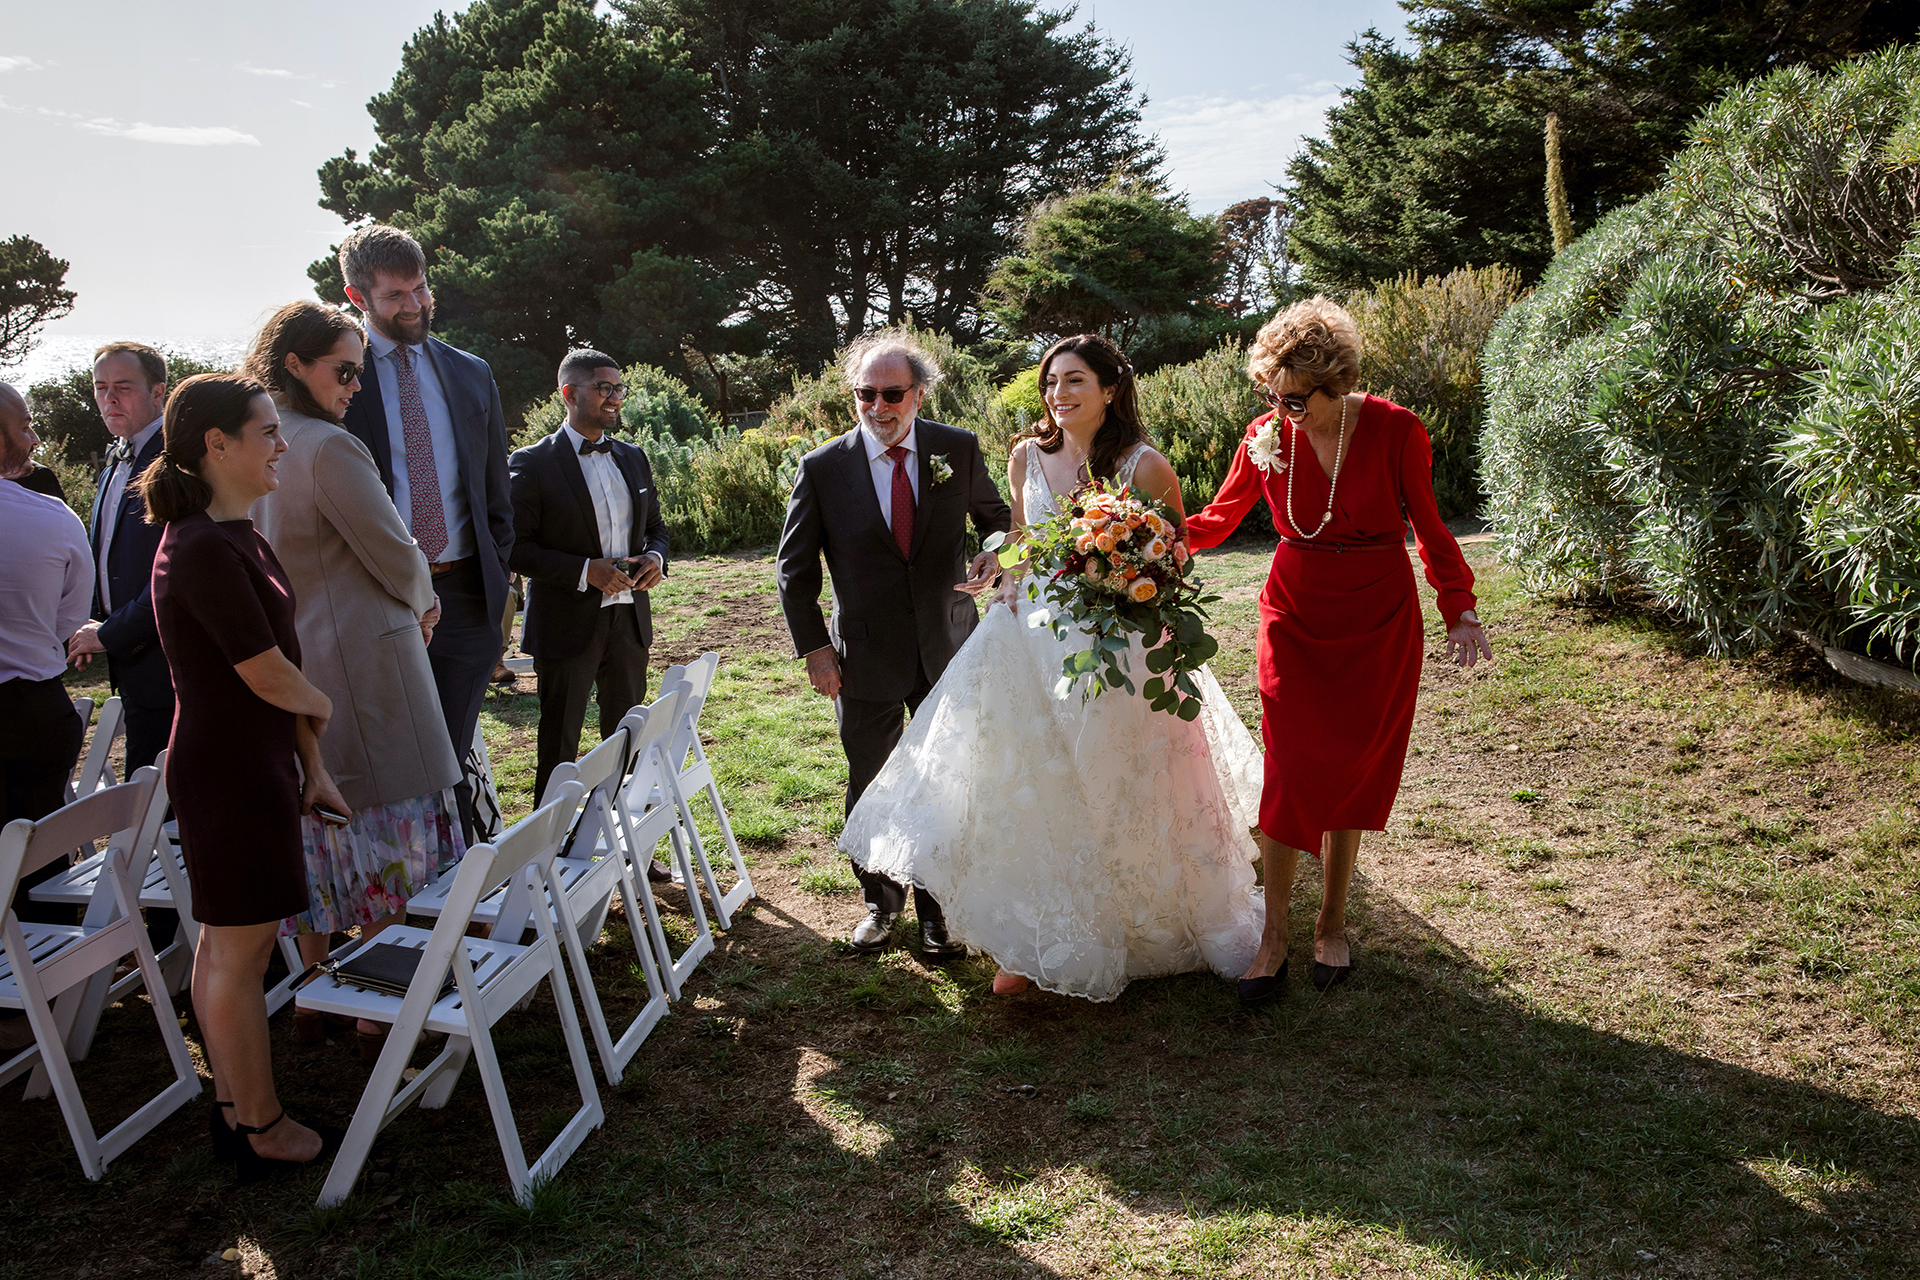 Heritage House, Mendocino Outdoor Elopement Image   The bride has a big smile as her mom and dad walk with her